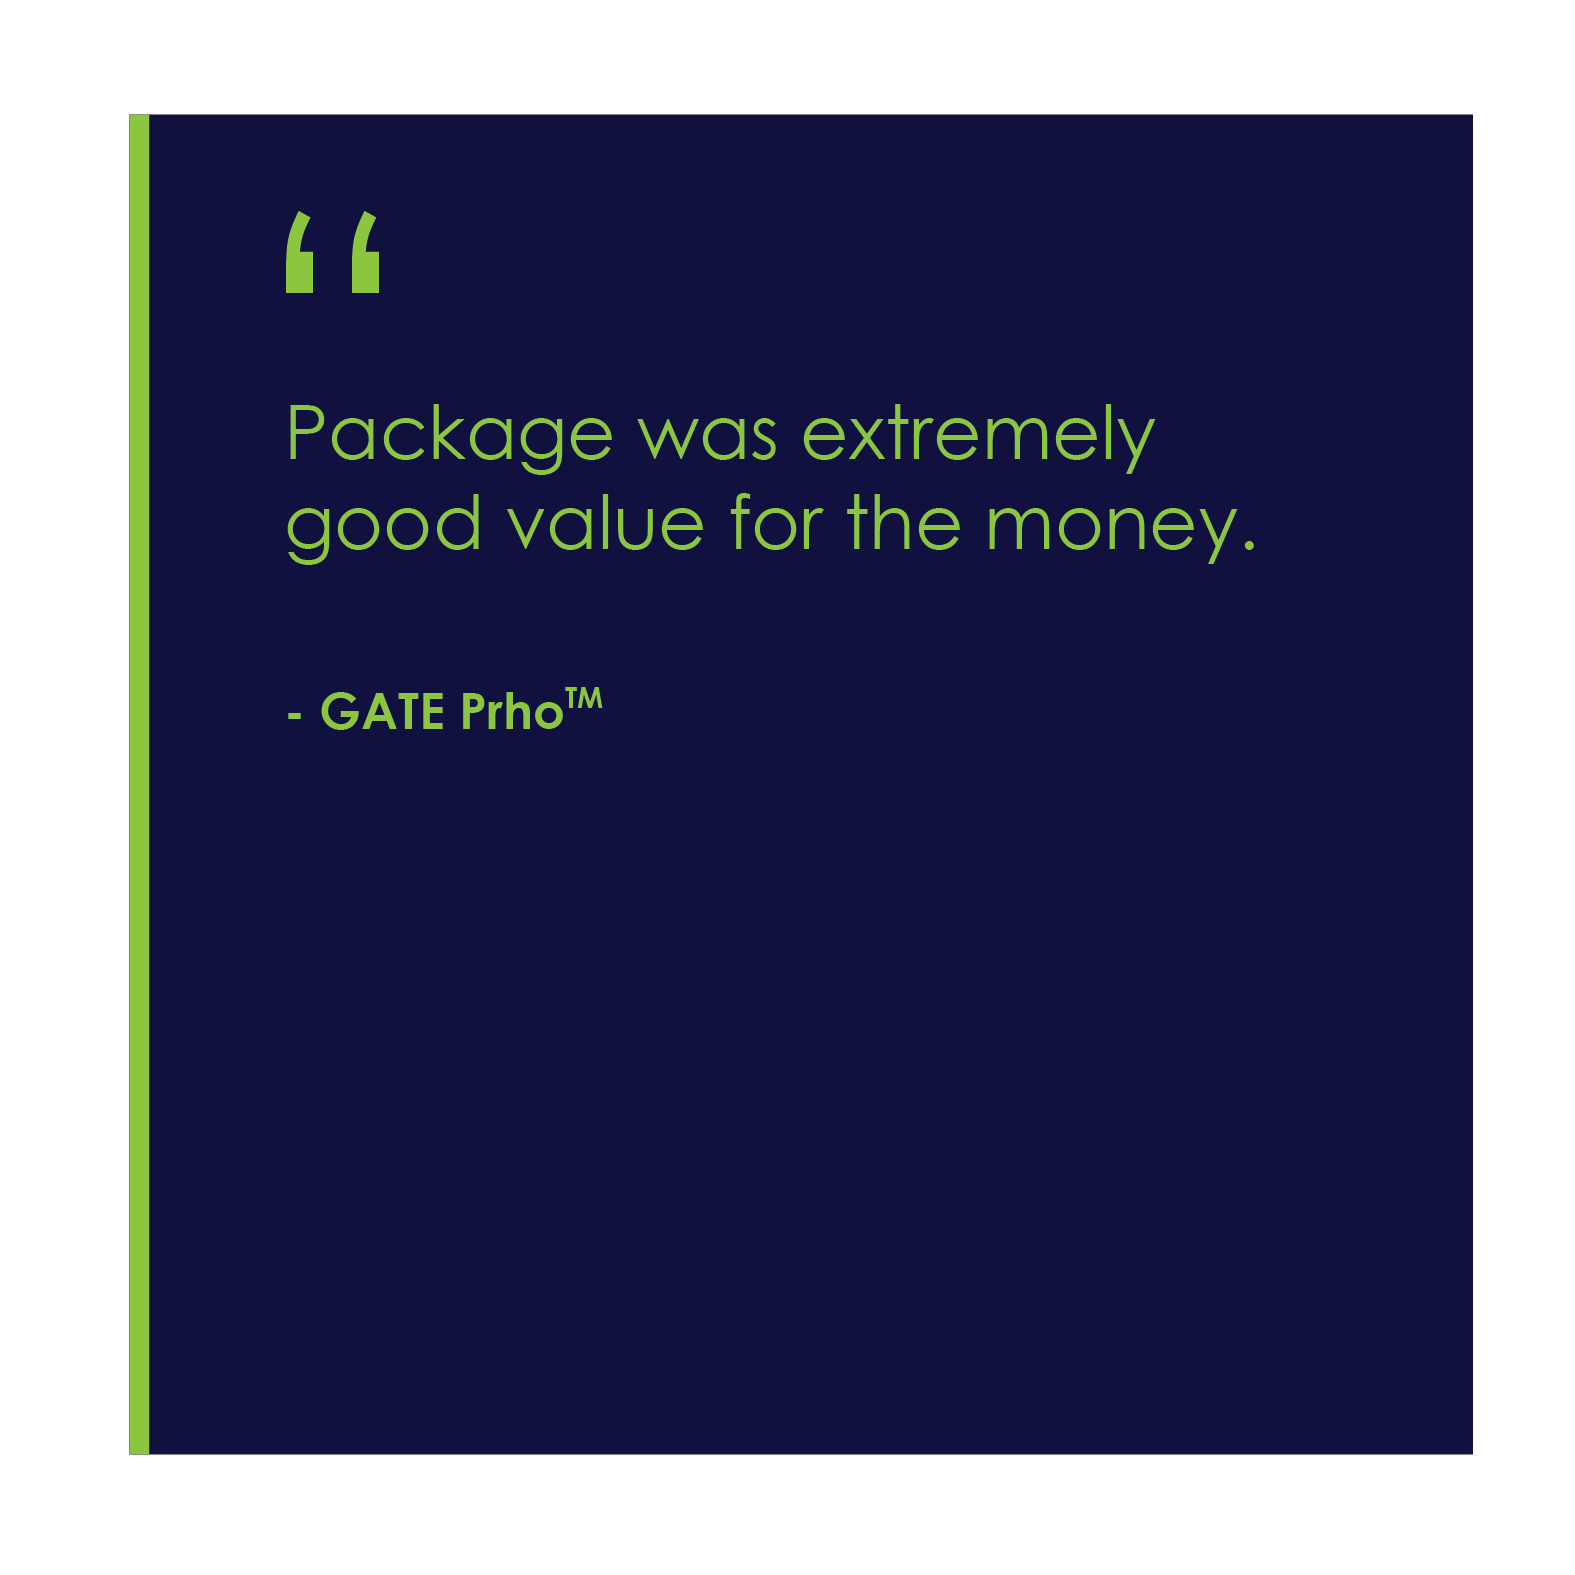 GATE Energy Website Quotes-13.png